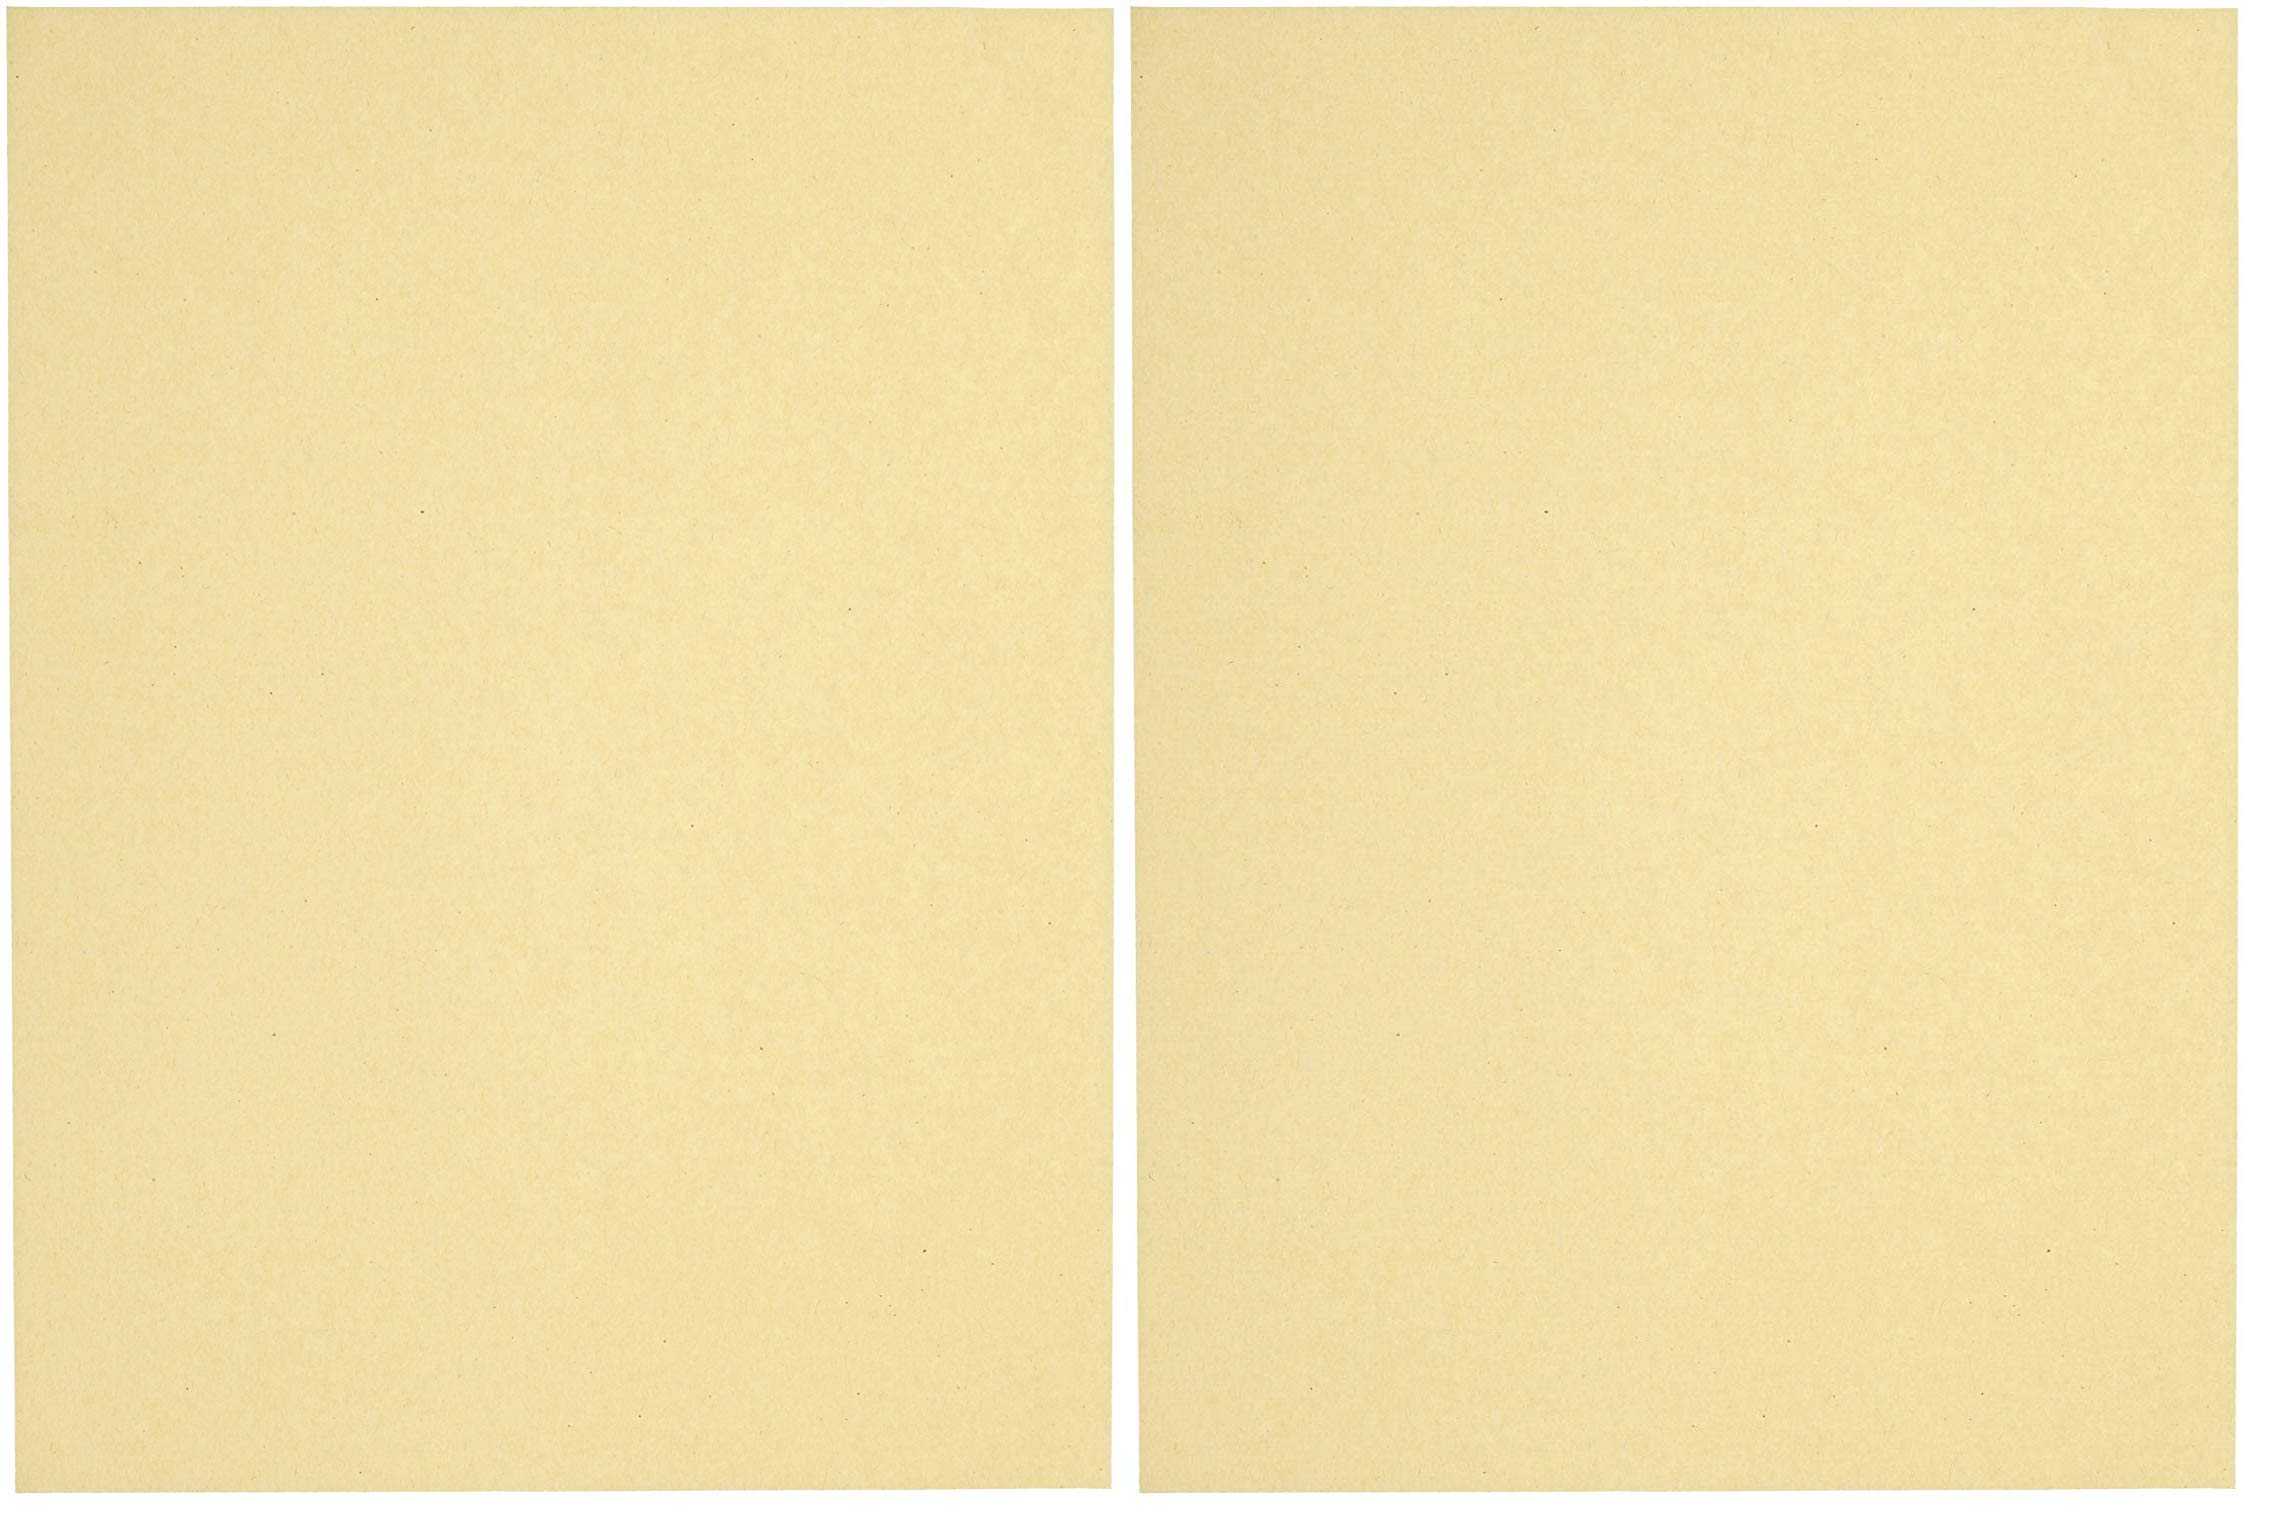 Sax Multi-Purpose Drawing Paper, 56 lbs, 9 x 12 Inches, Manila Cream, Pack of 500 (2-Pack)